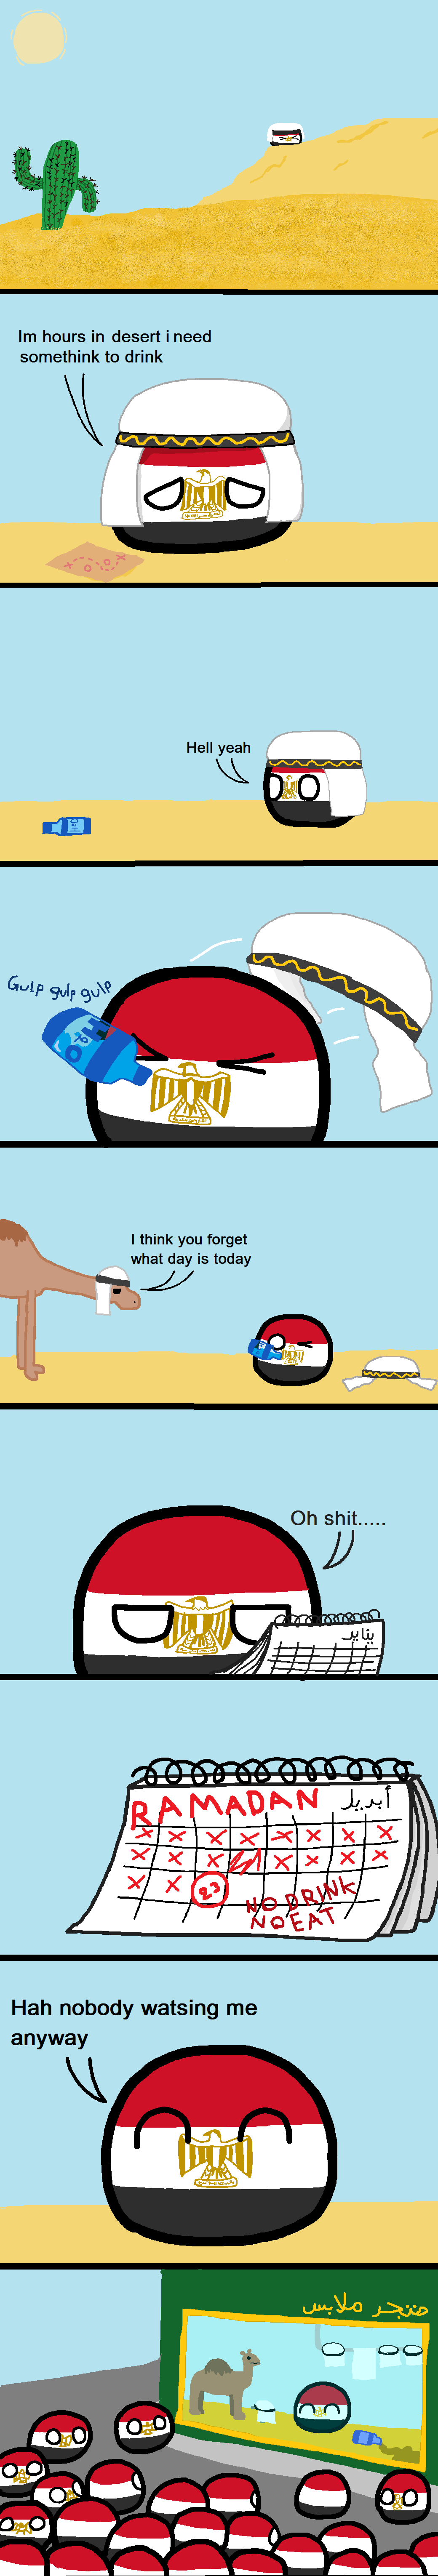 Italian Invasion Of Egypt Polandball Wiki Fandom